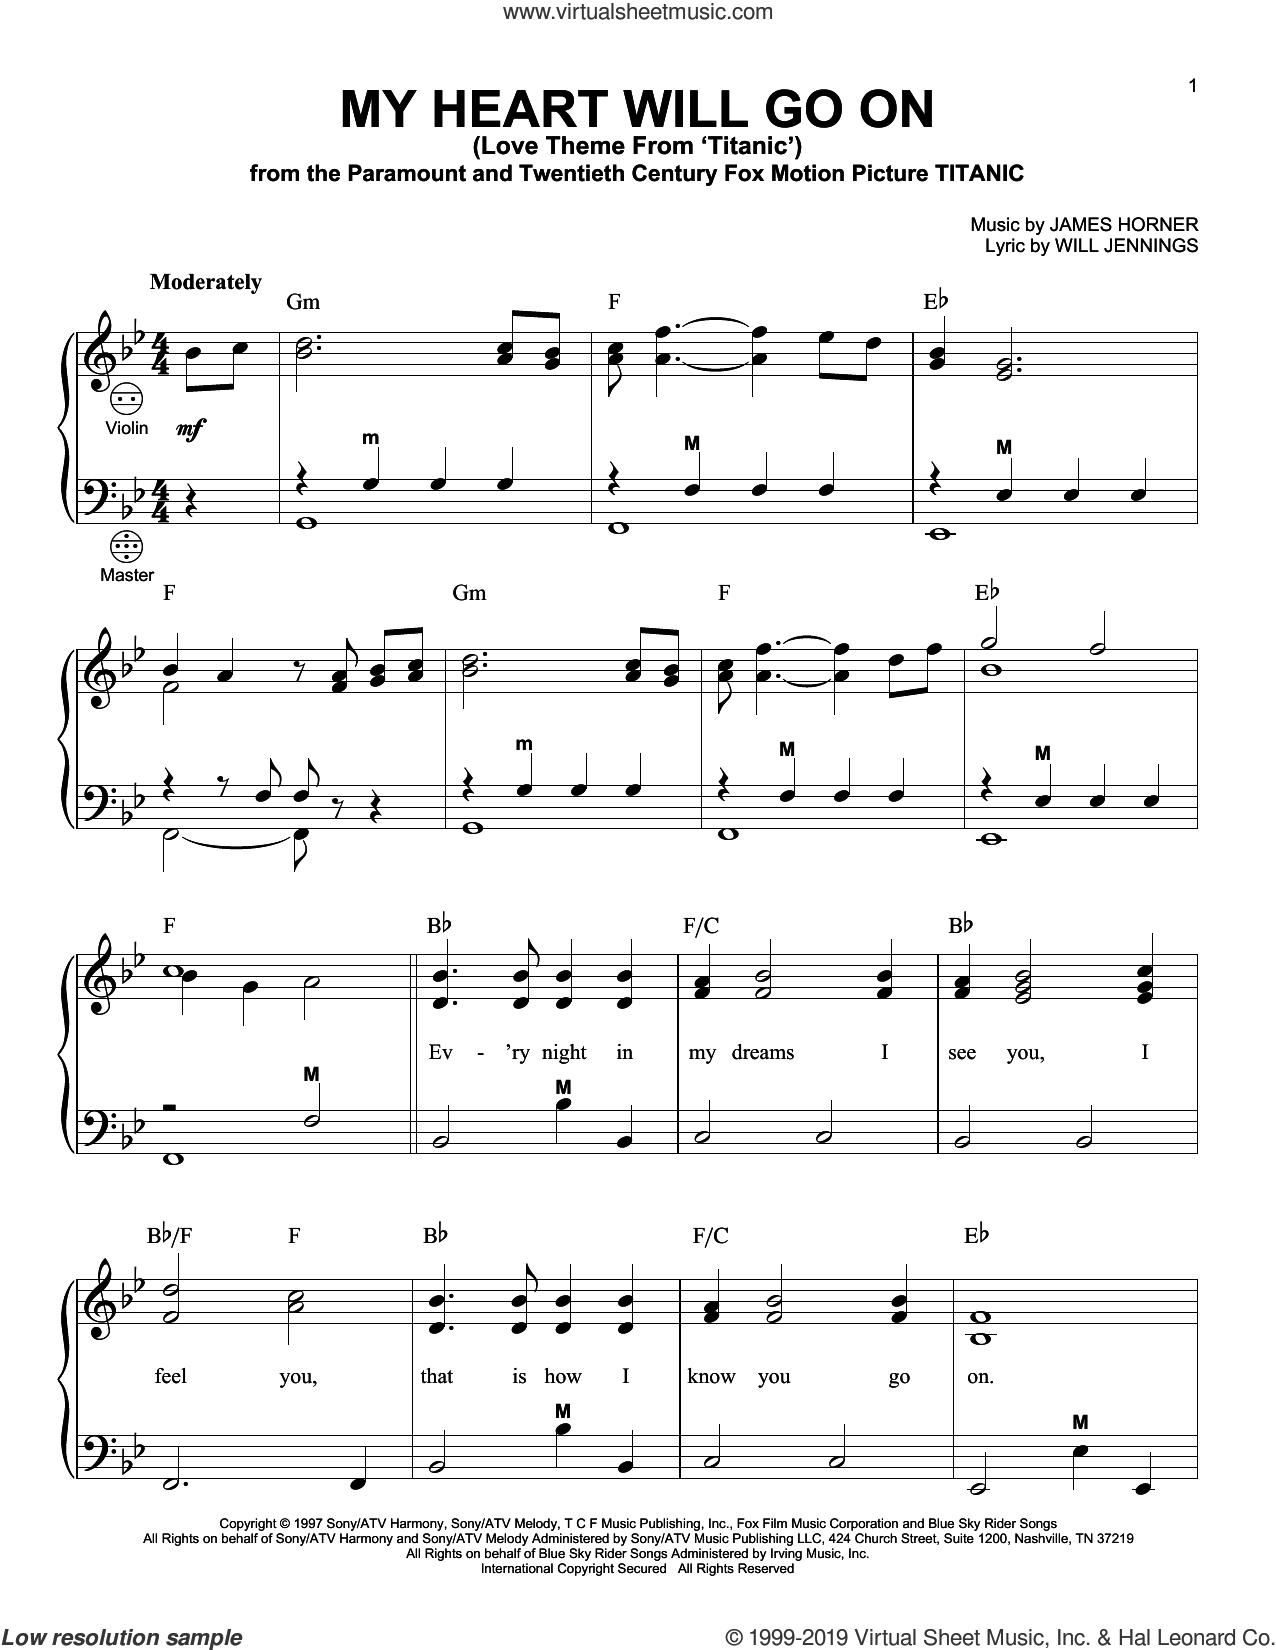 My Heart Will Go On (Love Theme From 'Titanic') sheet music for accordion by Celine Dion, Gary Meisner, James Horner and Will Jennings, intermediate skill level